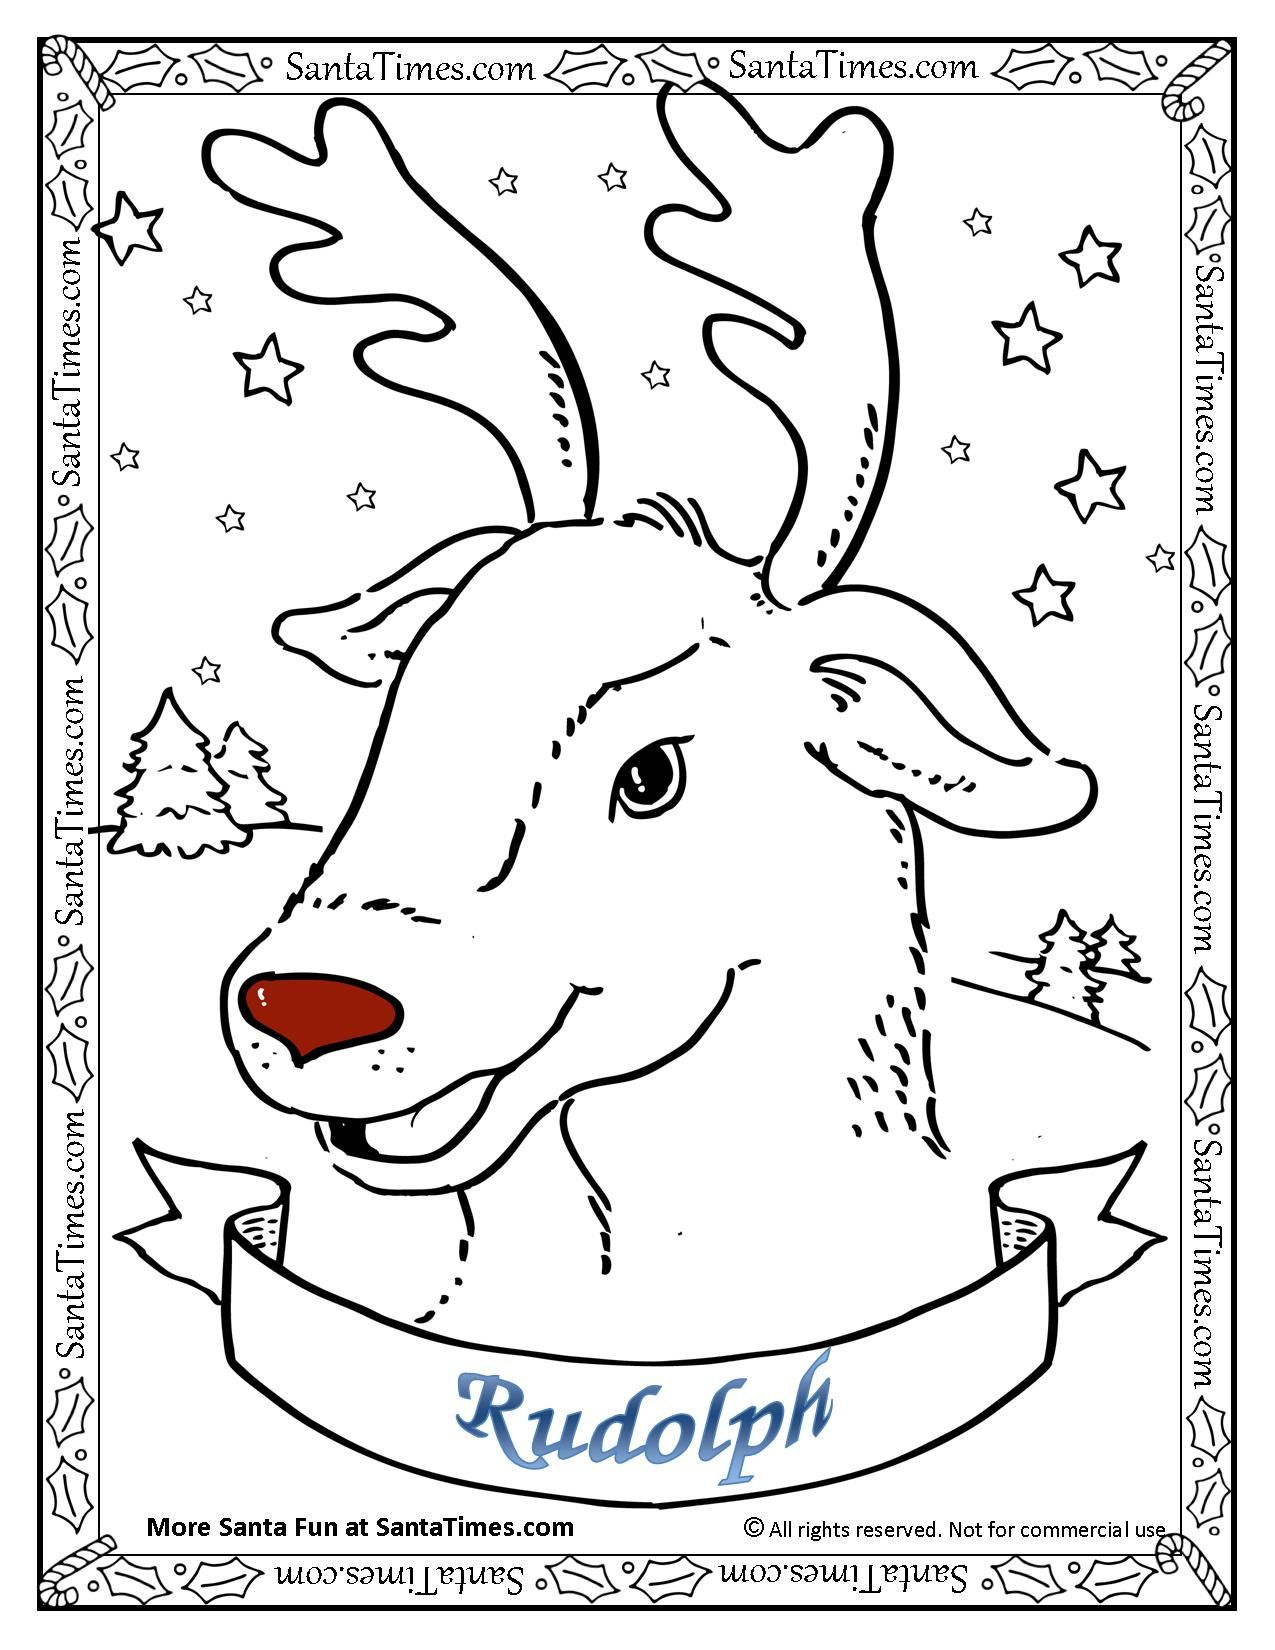 Rudolph the Red Nosed Reindeer coloring Page --> There\'s more fun ...